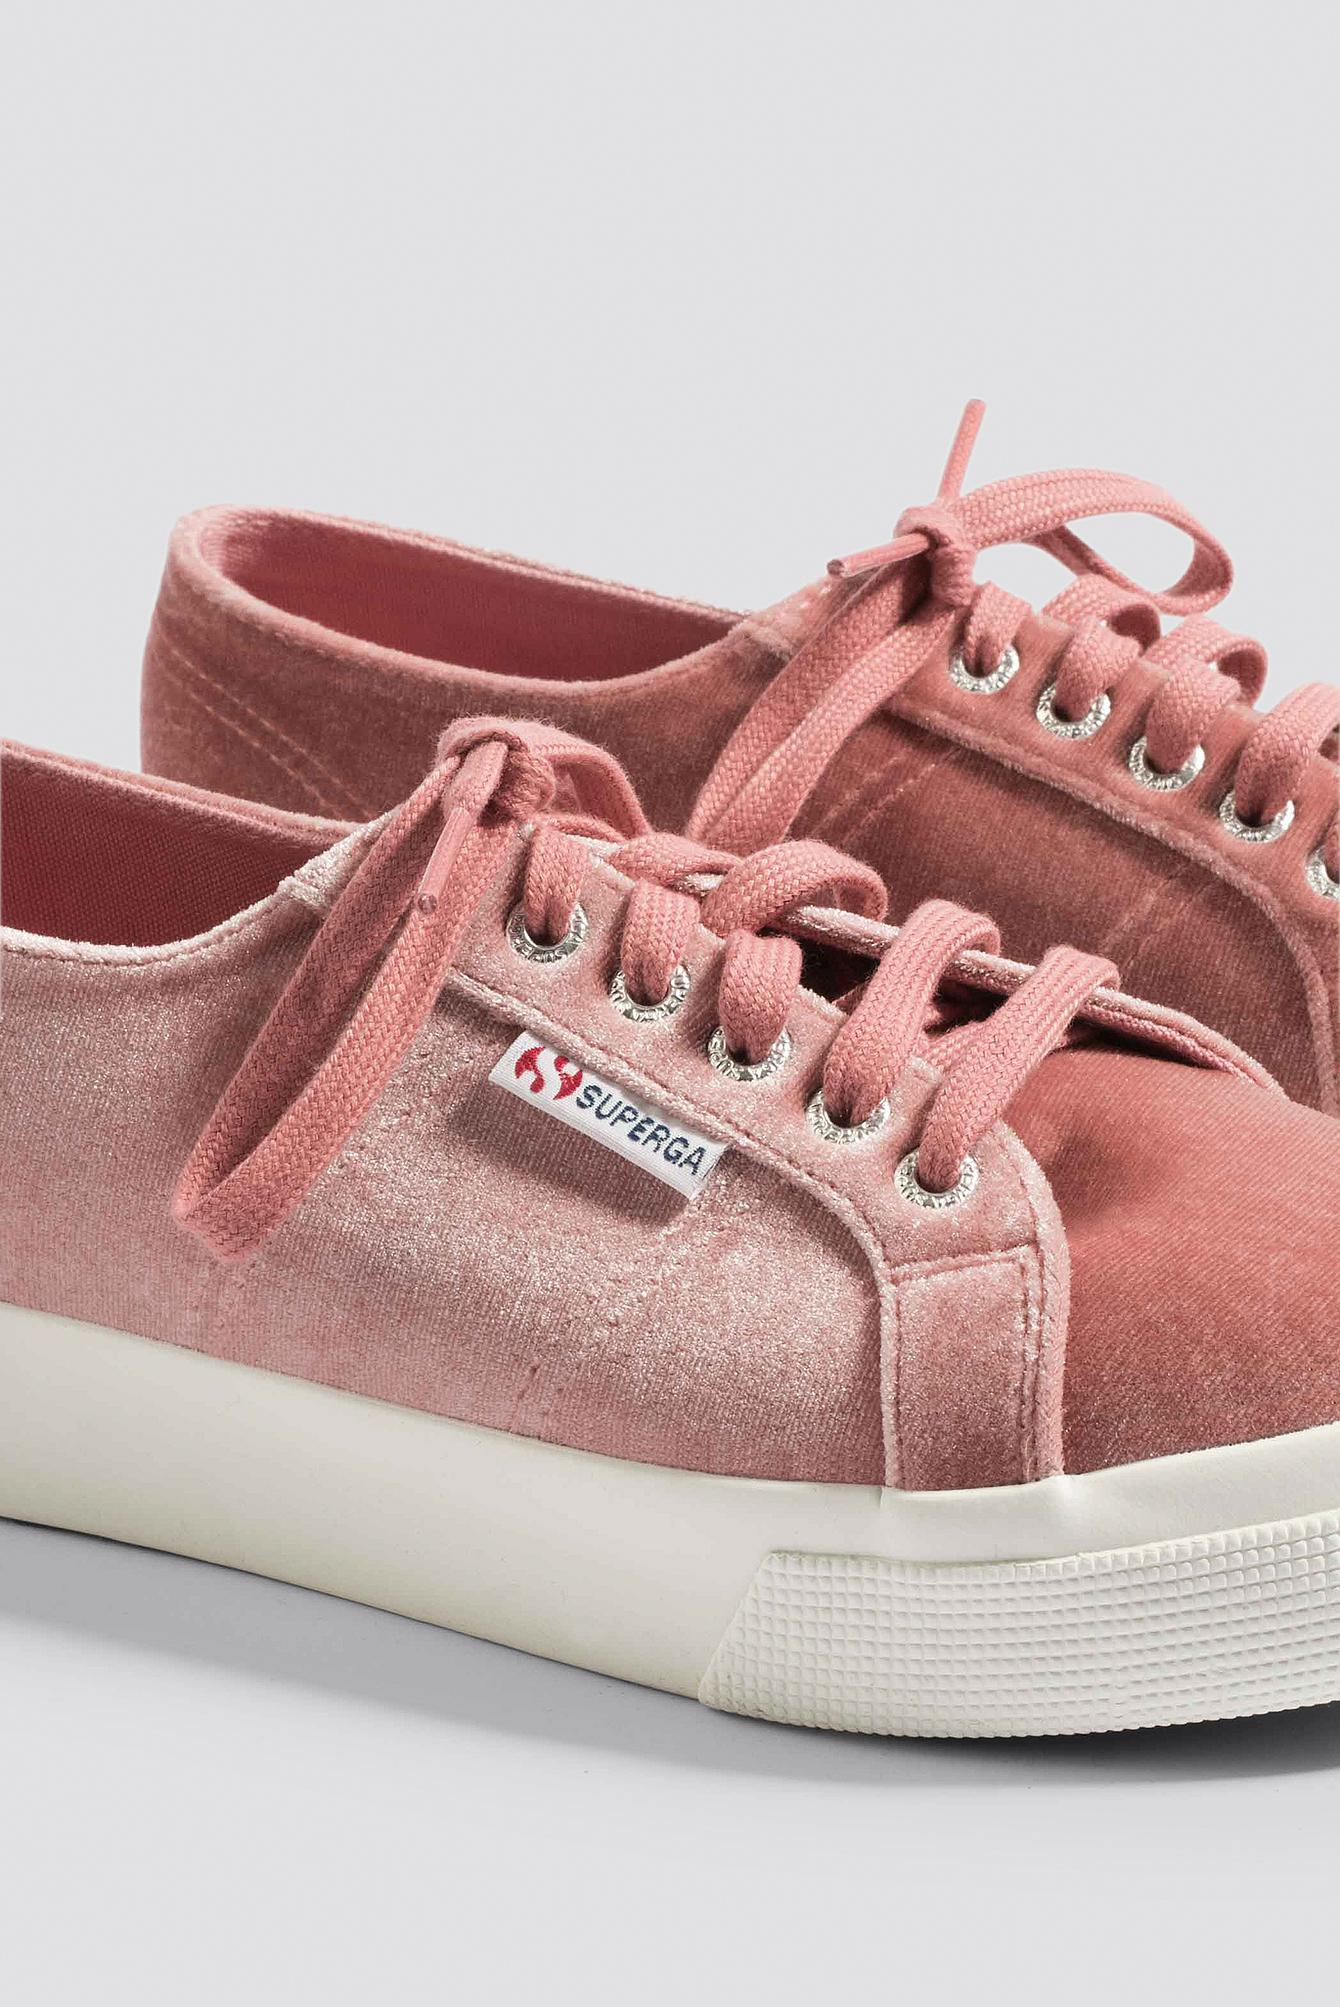 7da4608778f Lyst - Superga Velvetchenill 2730 Pink Dusty Rose in Pink